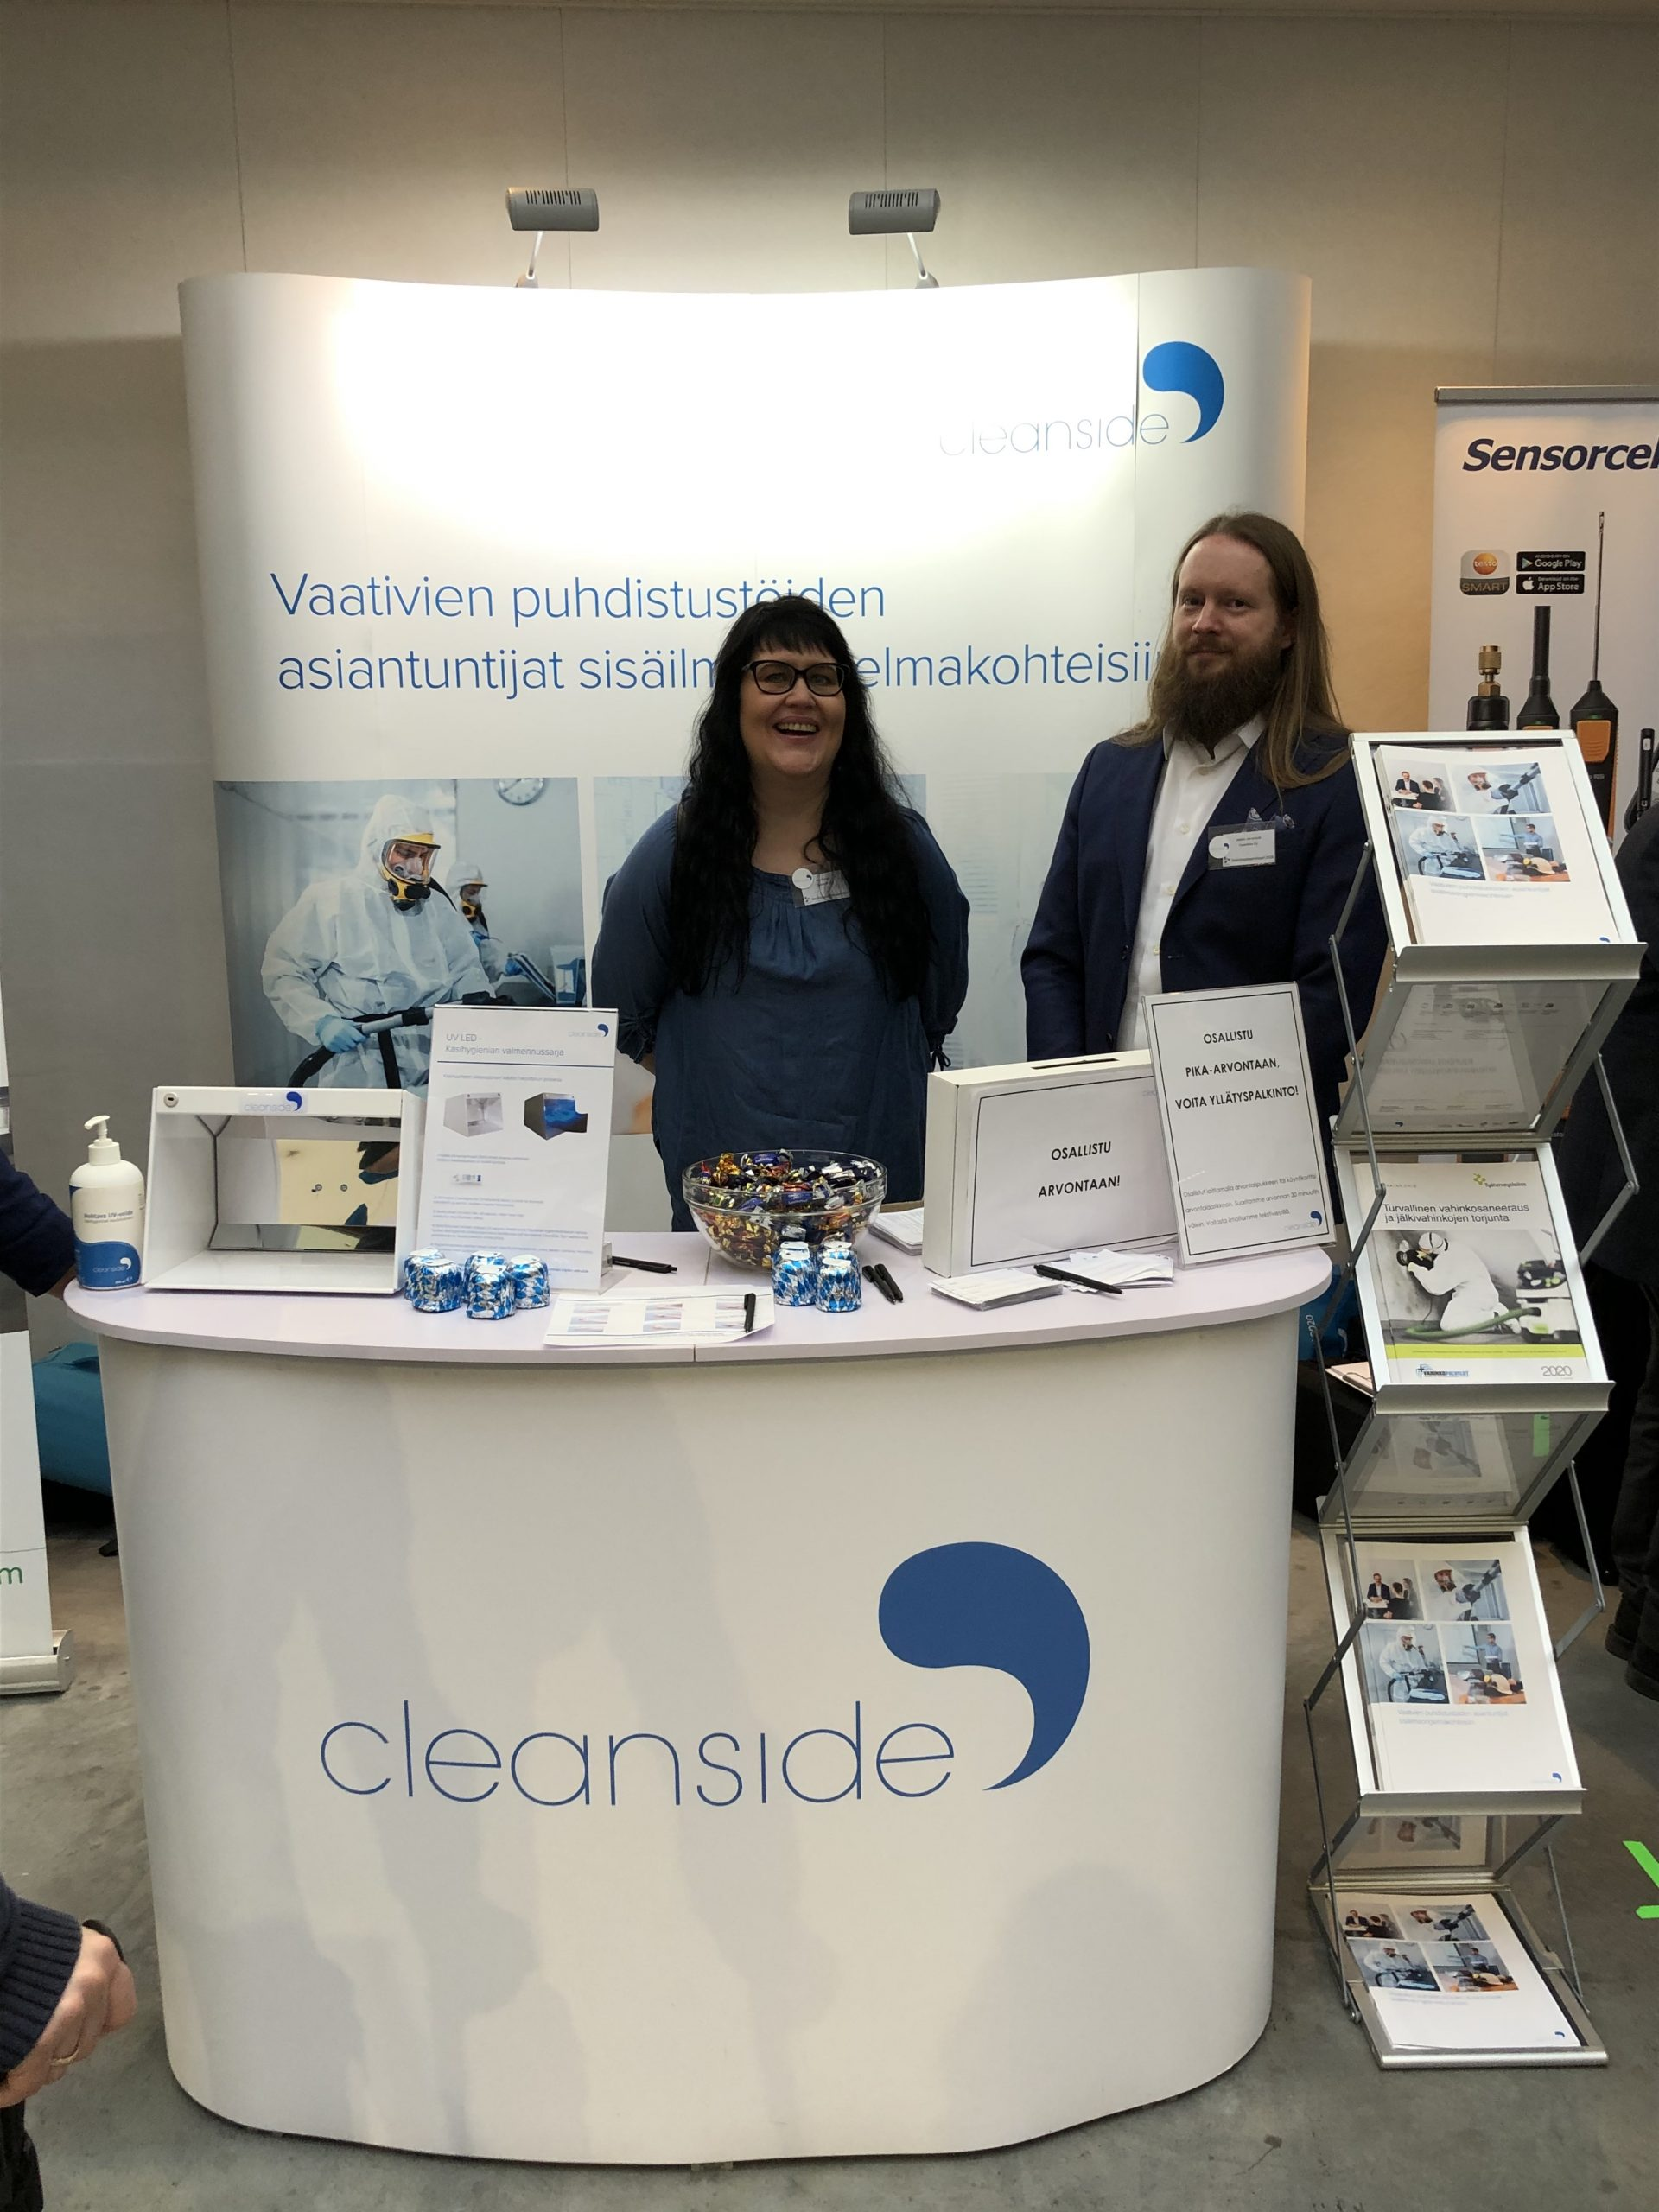 Cleanside maria.ronnholm@cleanside.fi, Author at Cleanside